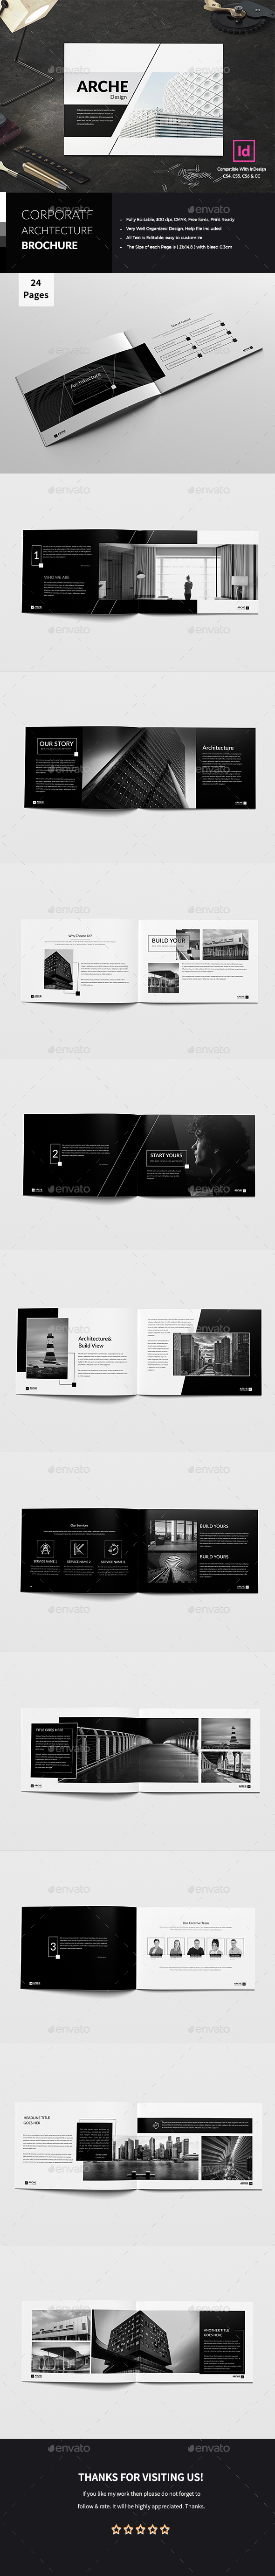 Corporate Architecture Brochure - Corporate Brochures